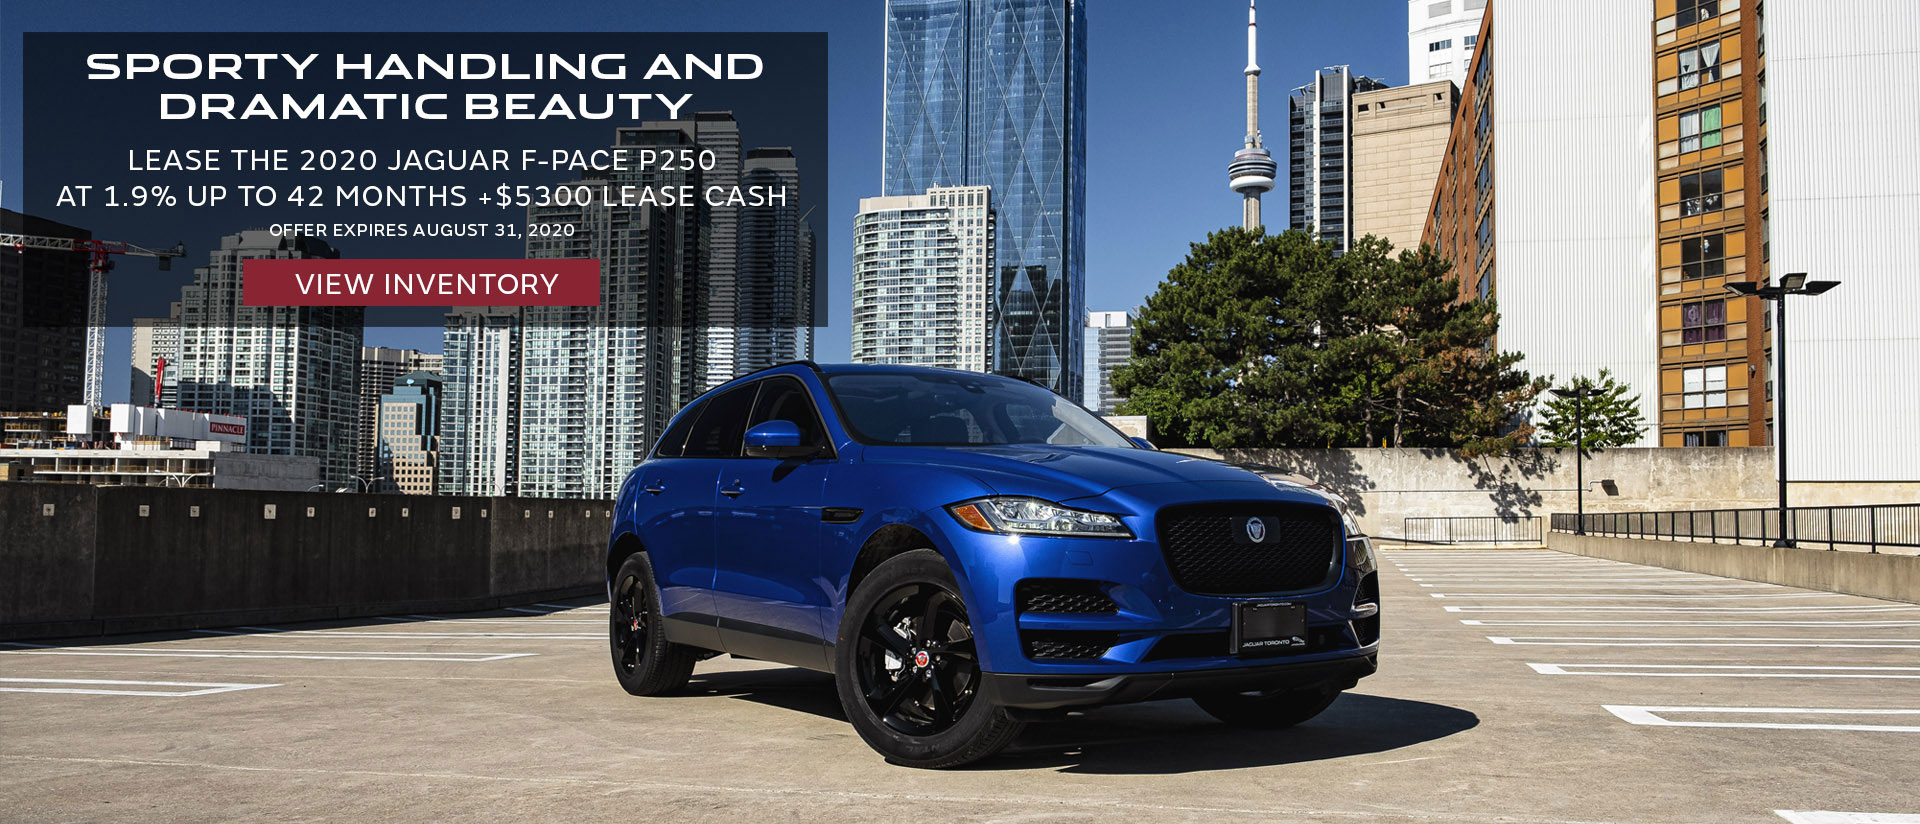 Jaguar F Pace Lease Finance Offer Toronto